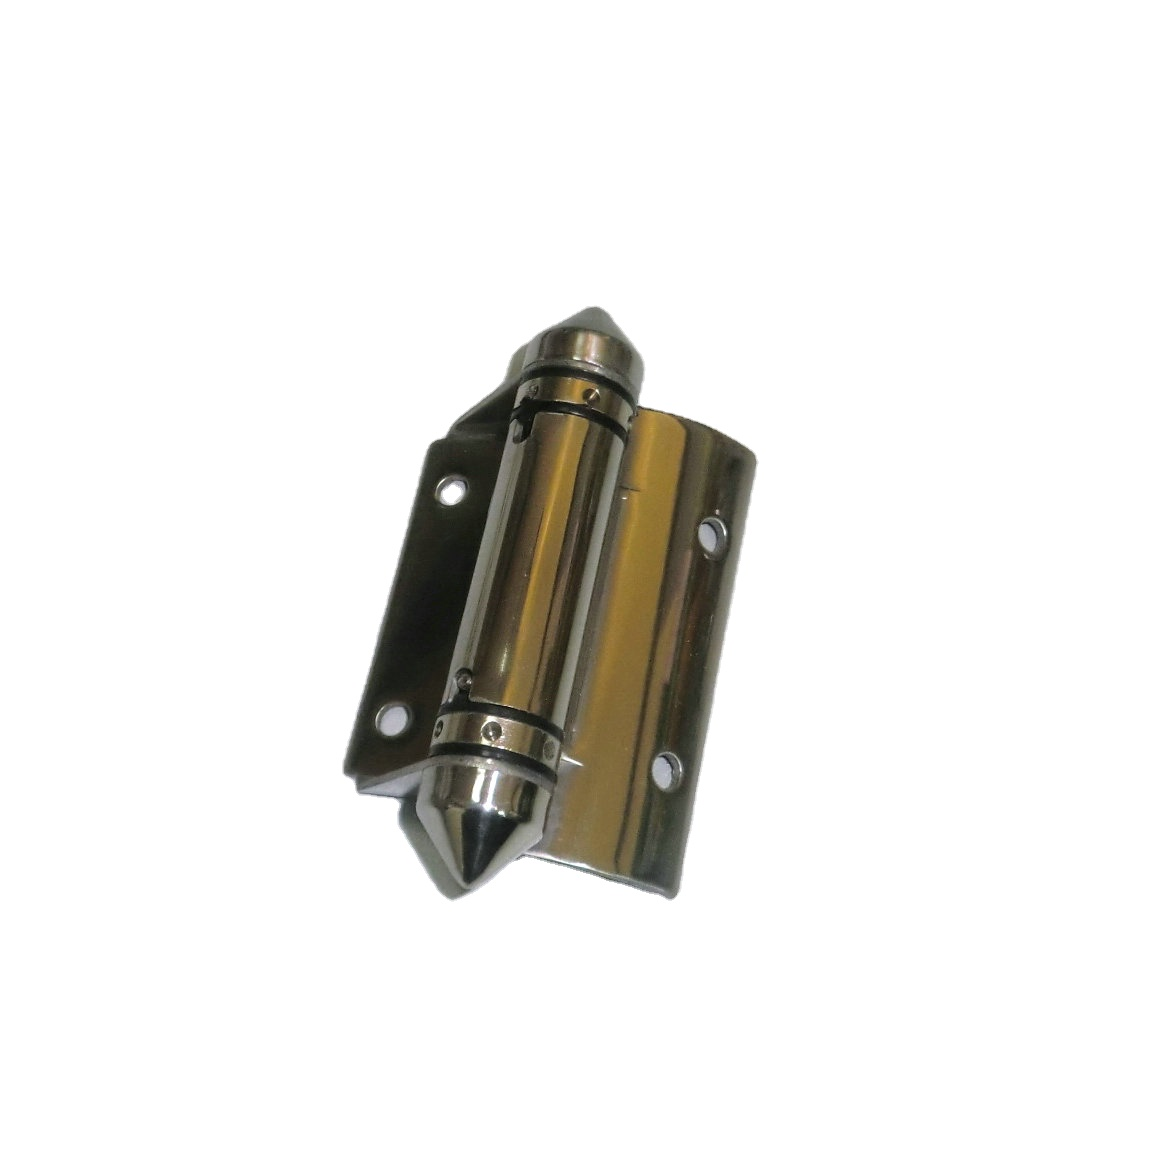 Heavy Duty Fence Gate Spring Hinge For Glass Pool Fencing Buy Heavy Duty Gate Hinge Gate Spring Hinge Fence Hinge Product On Alibaba Com